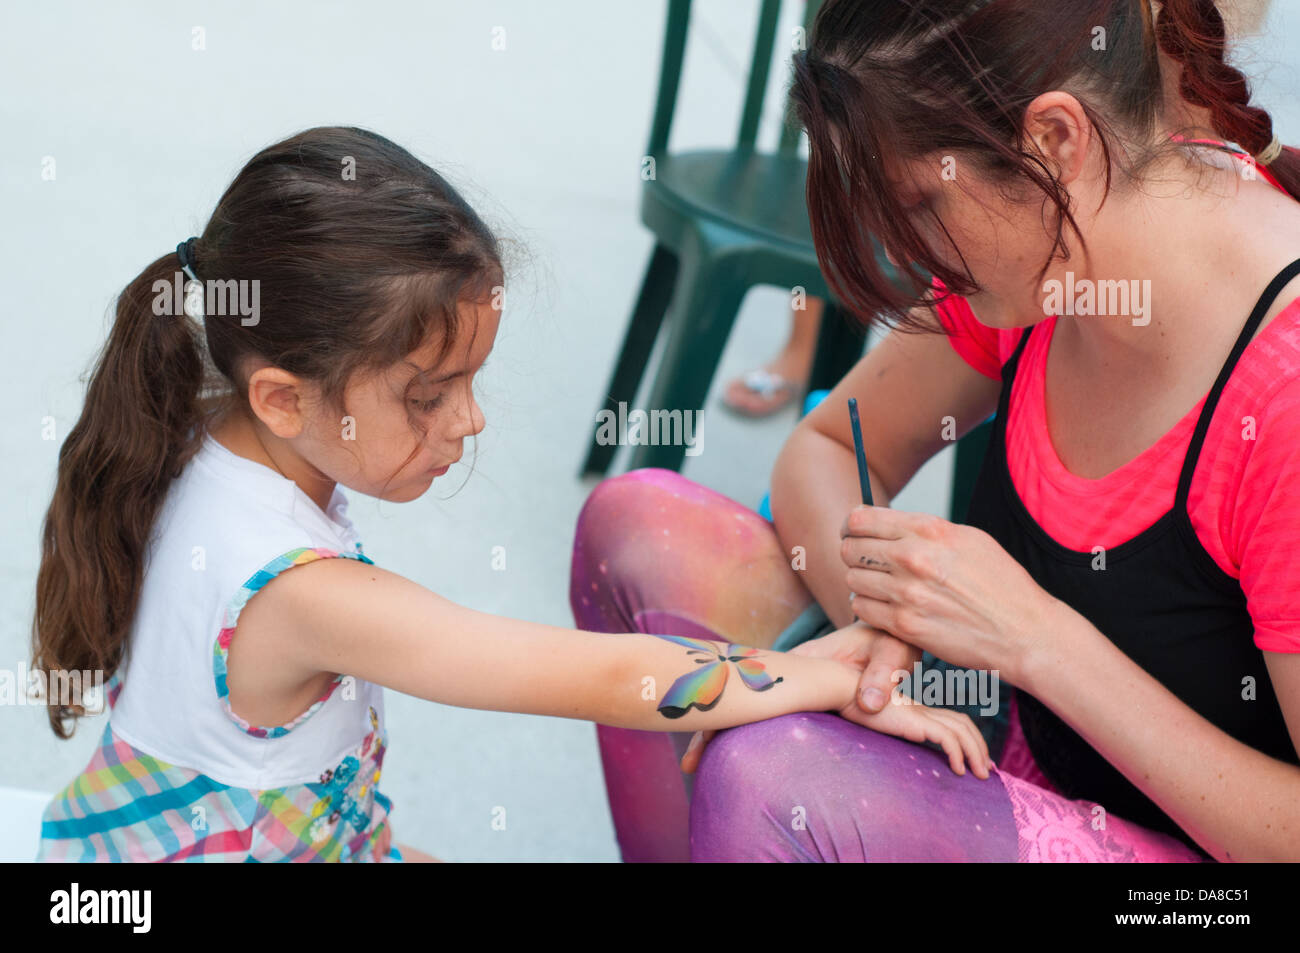 Children's artistic free make-up at Montreal Jazz Festival, Montreal Canada, July 2013 - Child is model released - Stock Image